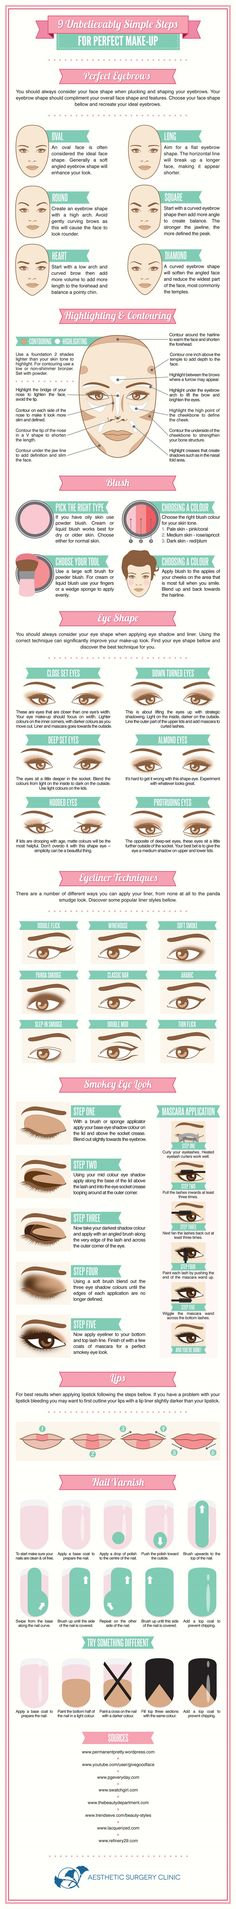 Great tips for applying makeup - Infographic | Robyns.World